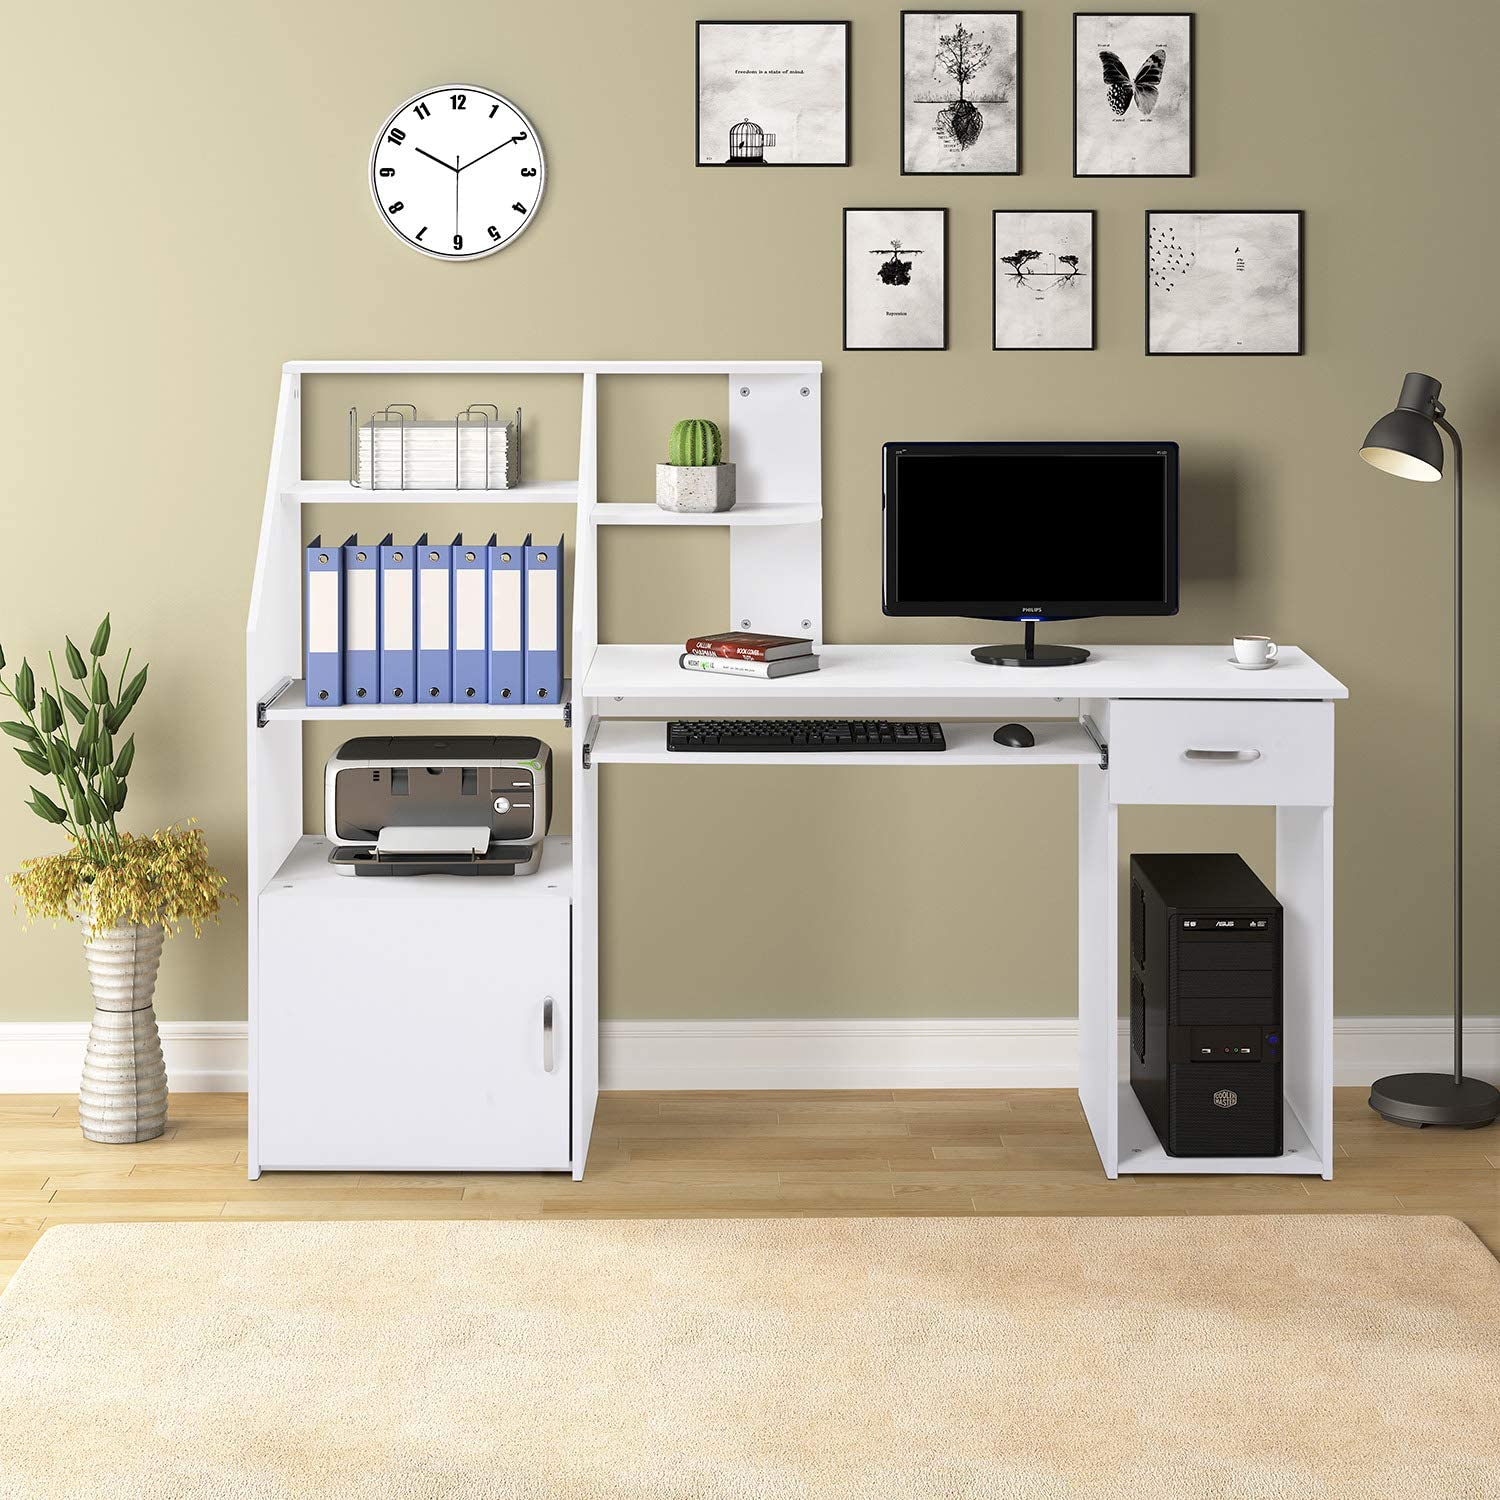 Merax Computer Desk with Cabinet,Home Office Desk, Computer Workstation, Study Writing Desk with Storage Drawer and Pull-Out Keyboard Tray(White)